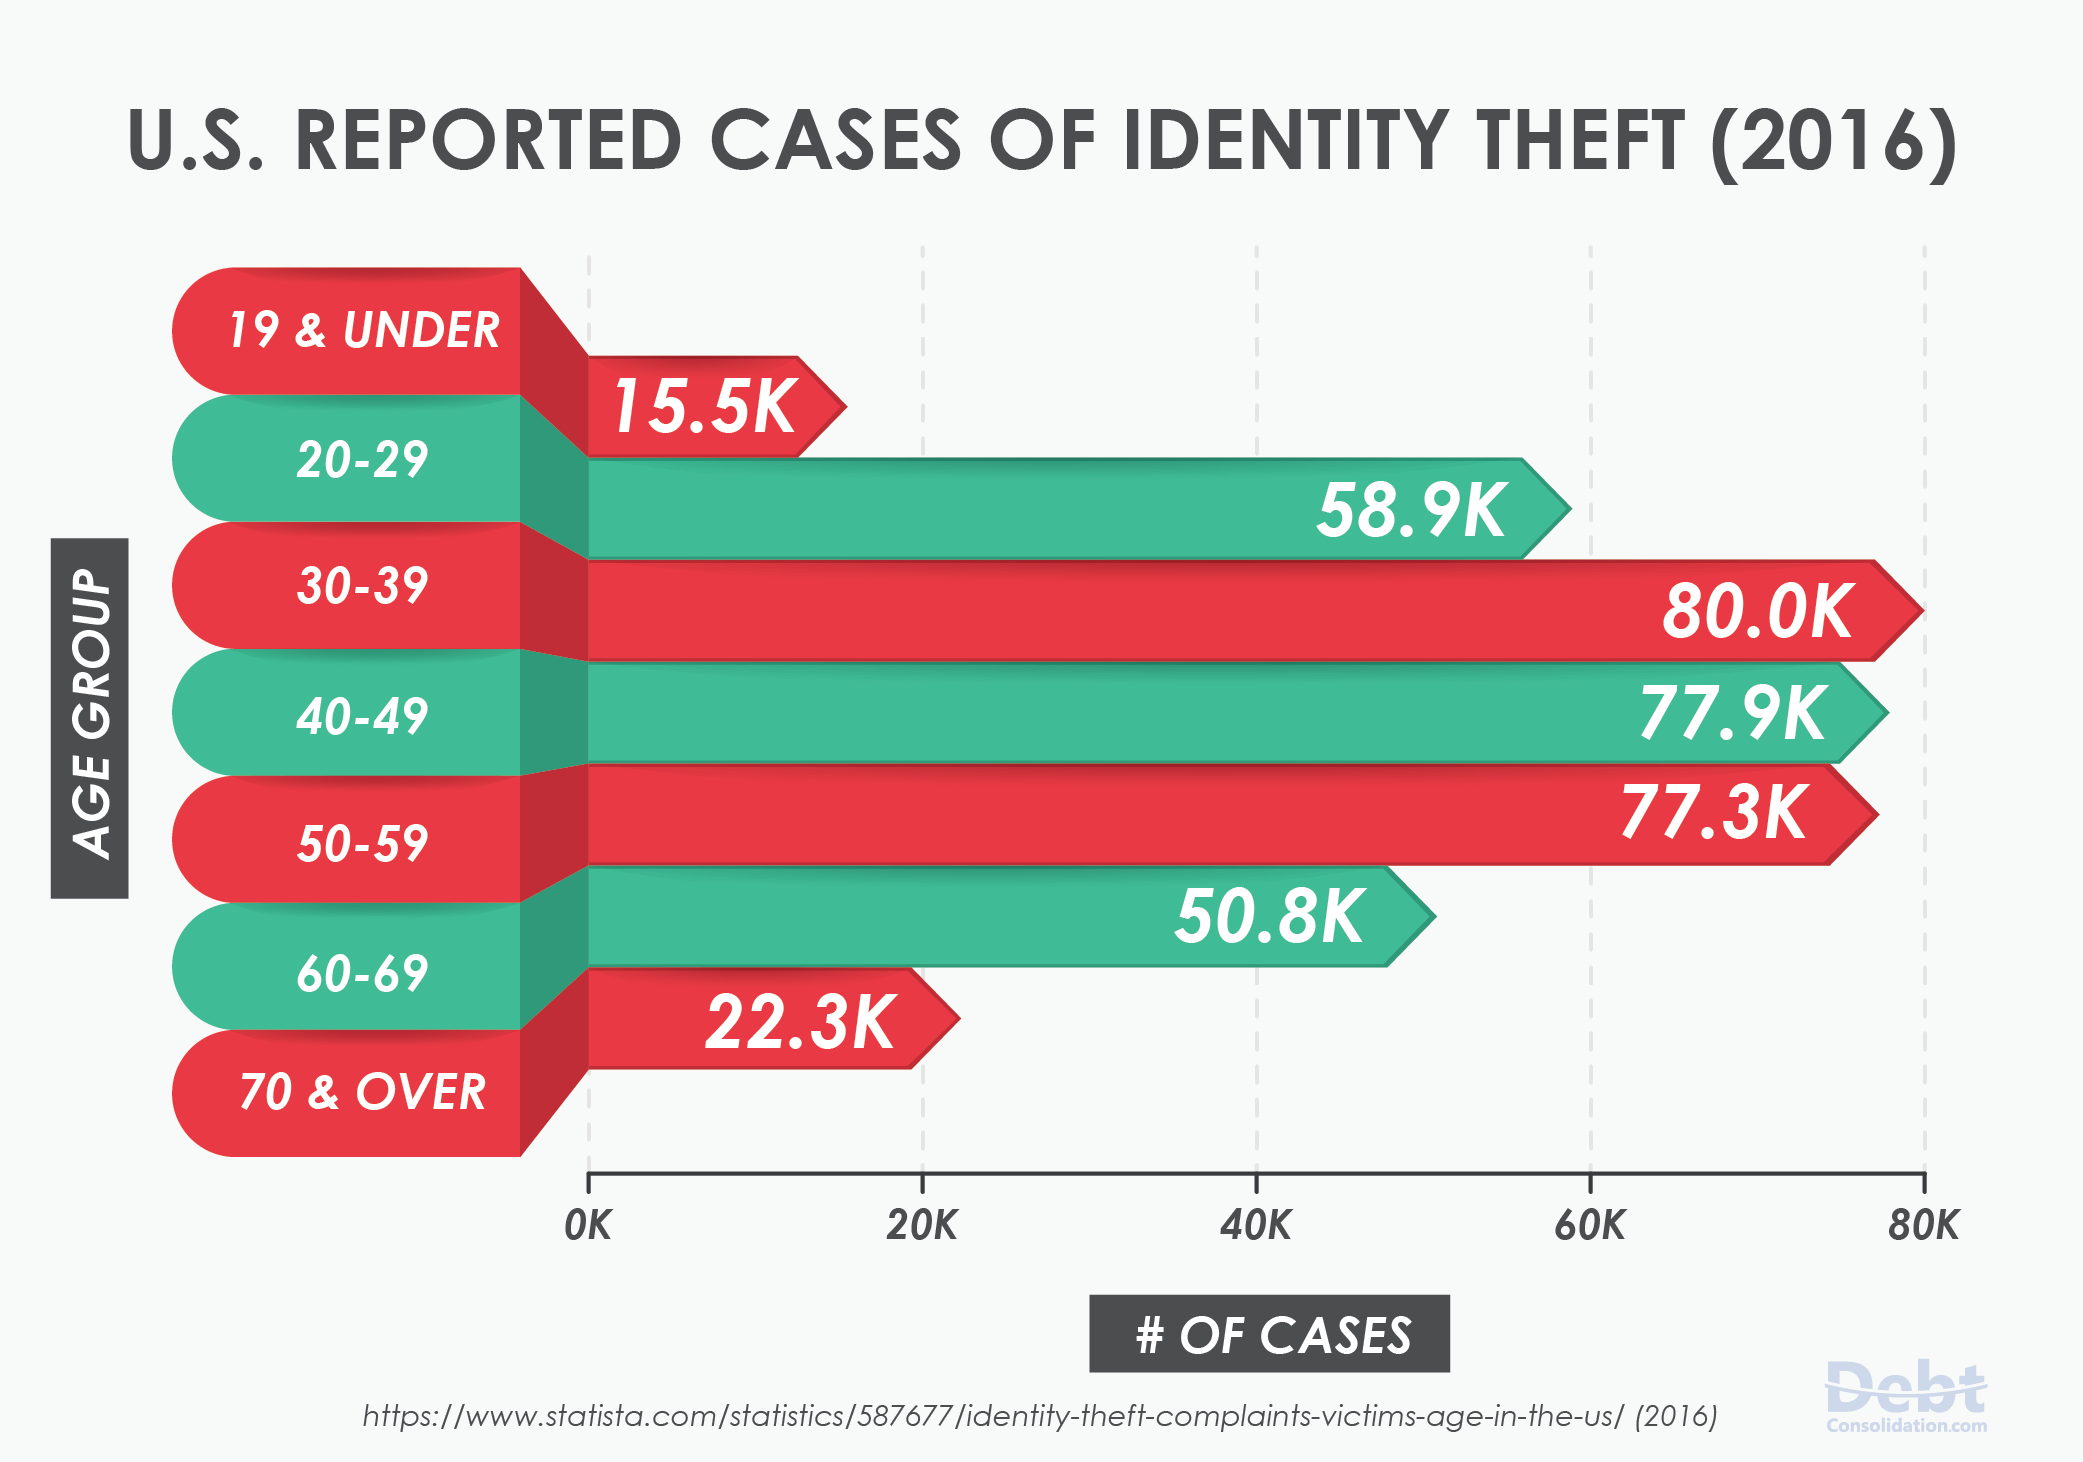 Data Showing U.S. Reported Cases of Identity Theft